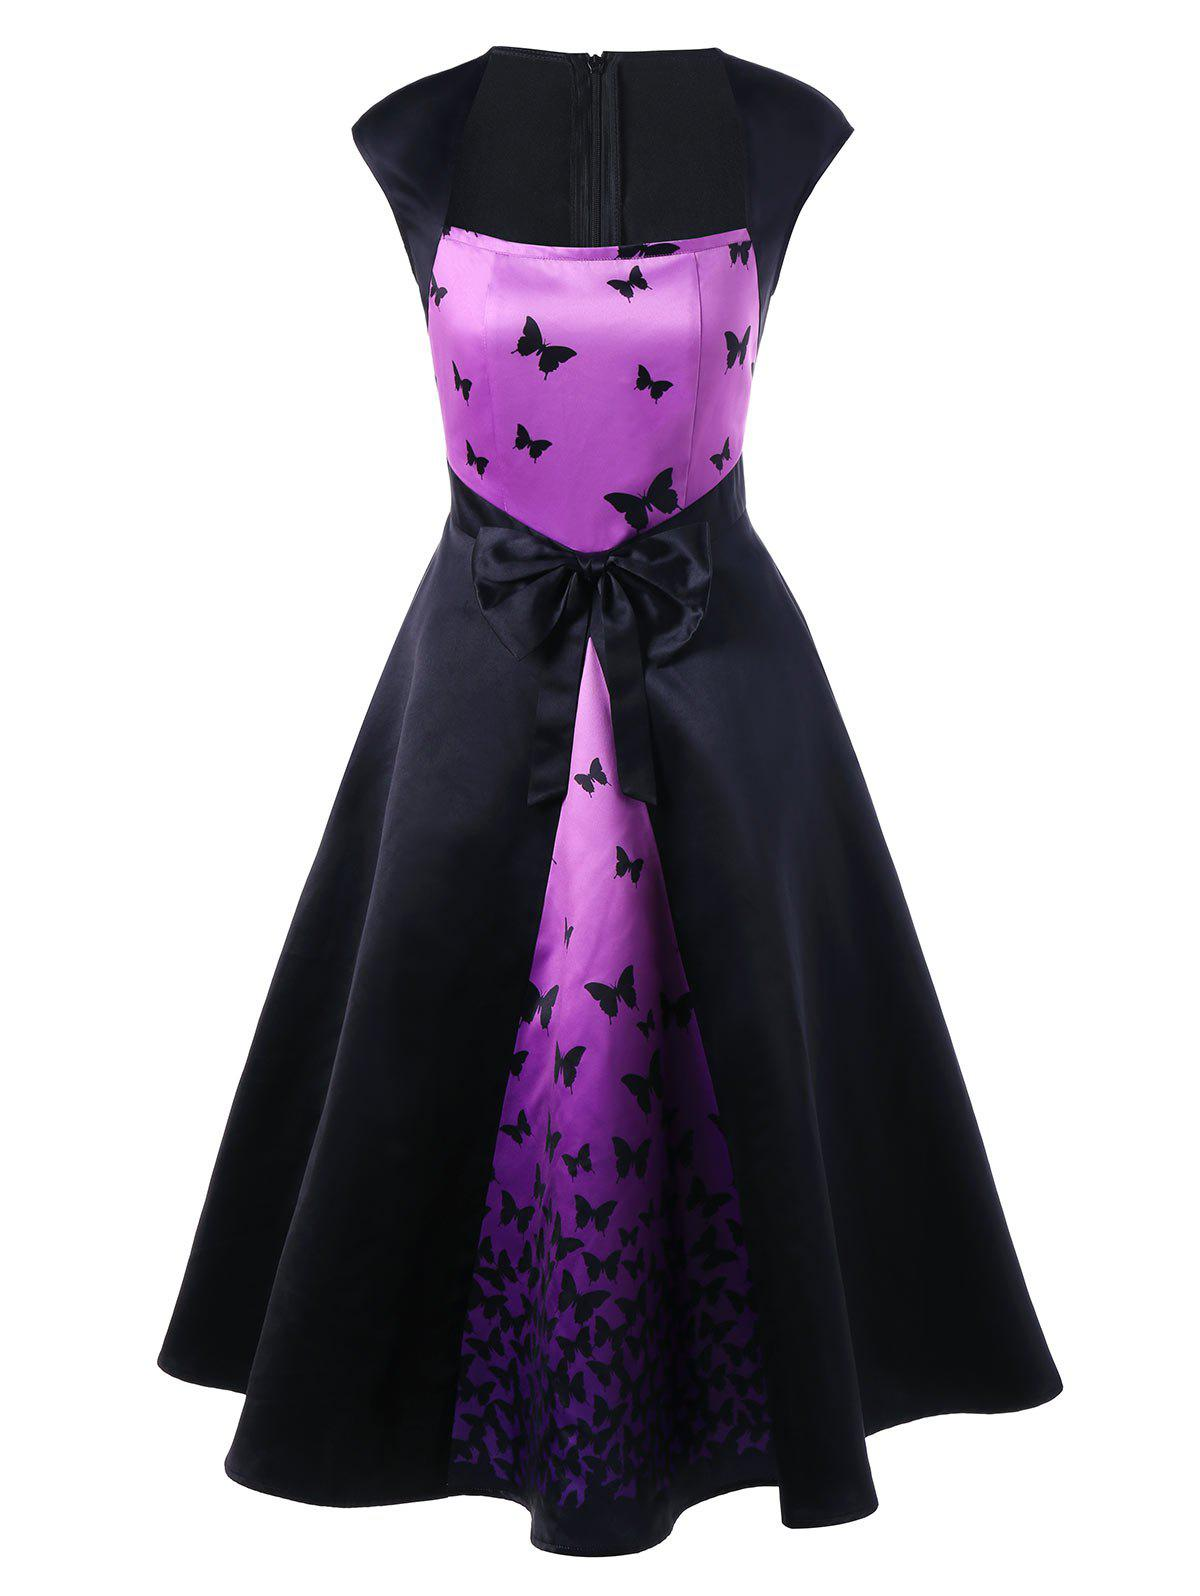 Chic Butterfly Print Bowknot Embellished Square Neck Dress